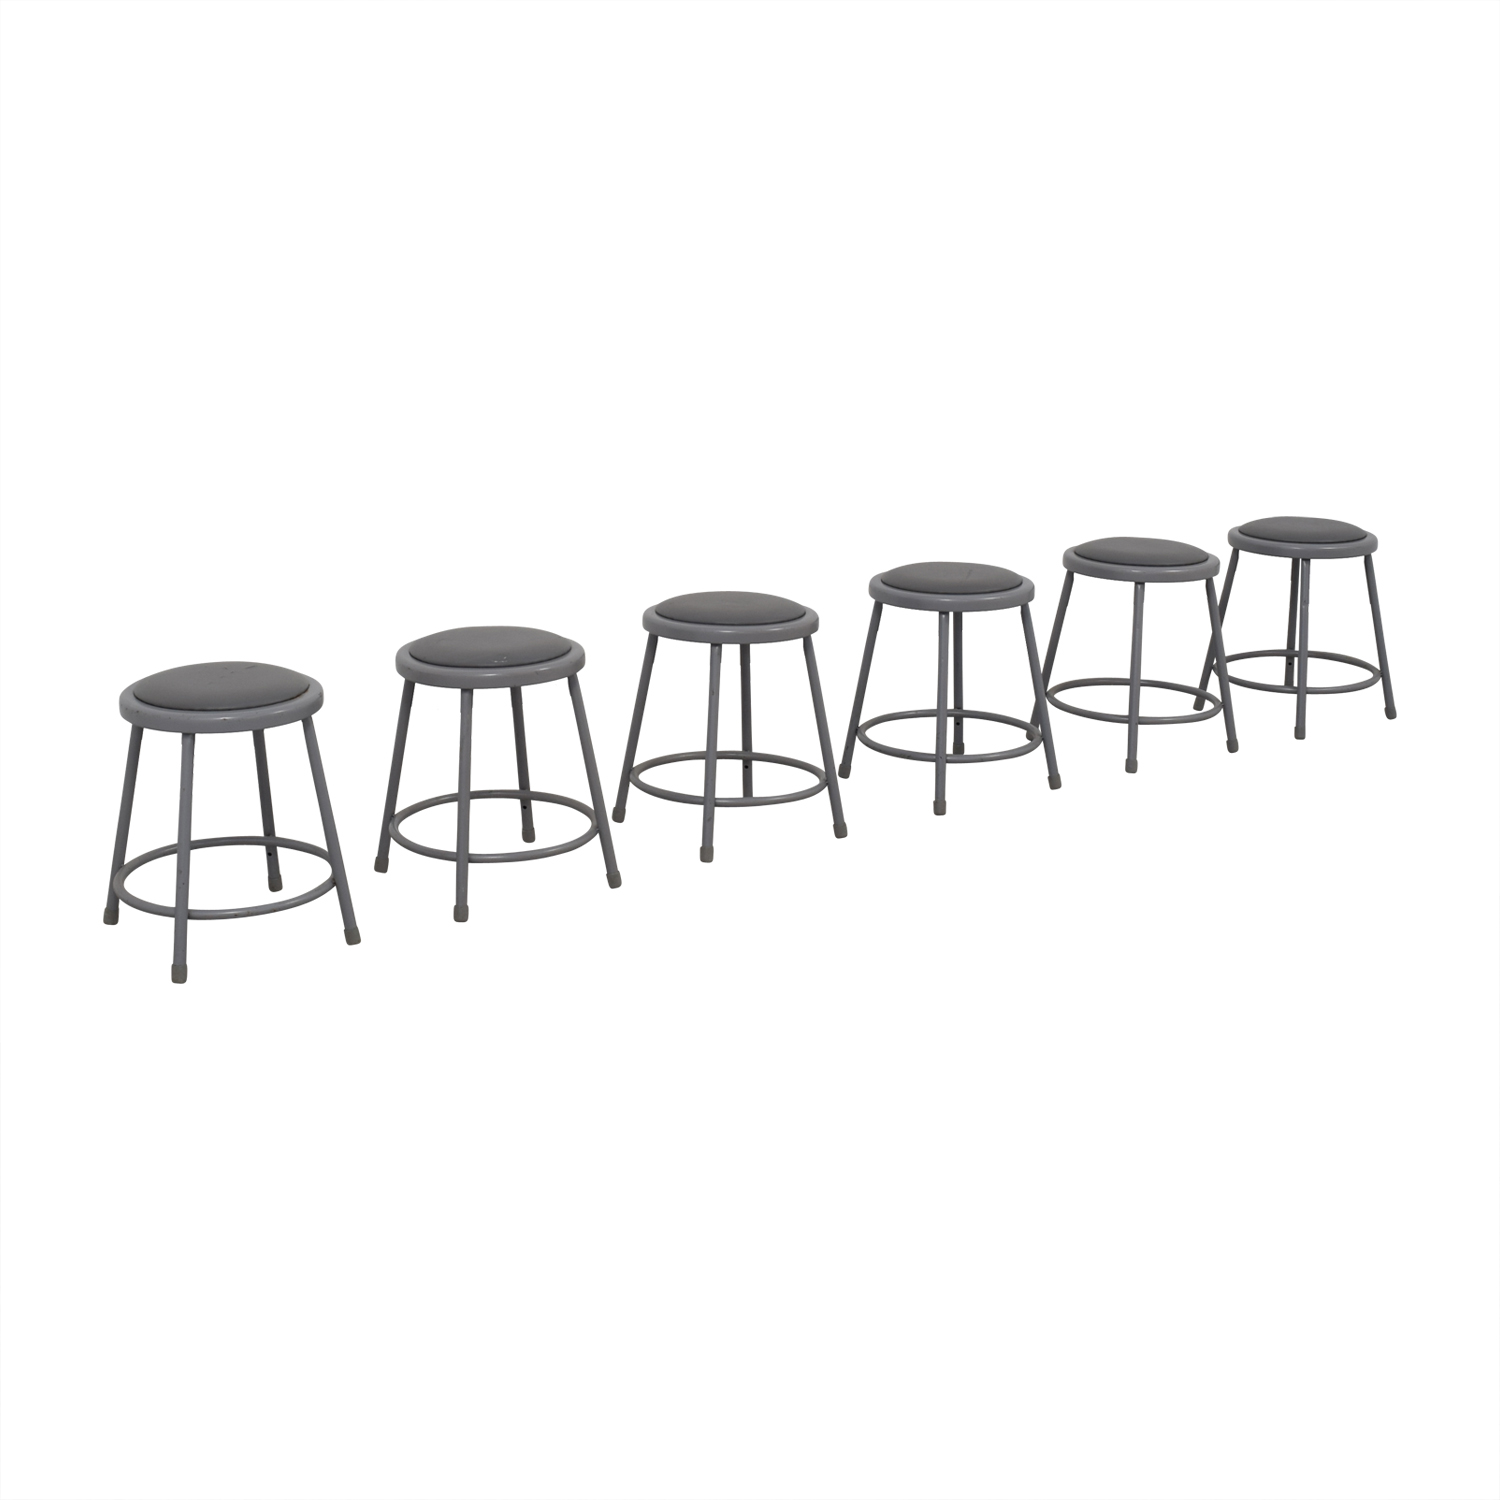 National Public Seating National Public Seating Metal Shop Stools gray